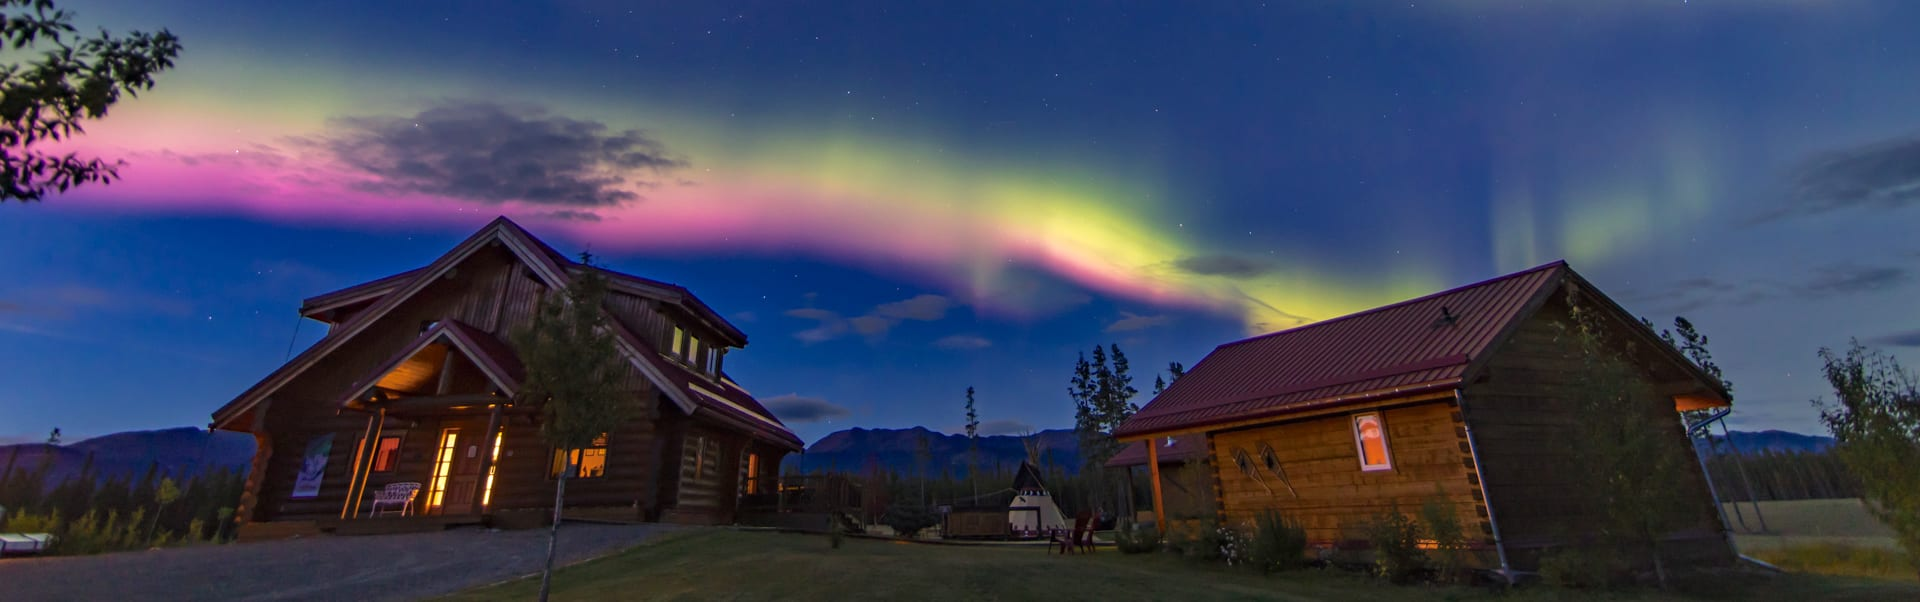 Affordable Lighting Canada Aurora Viewing Packages Northern Lights Resort Spa